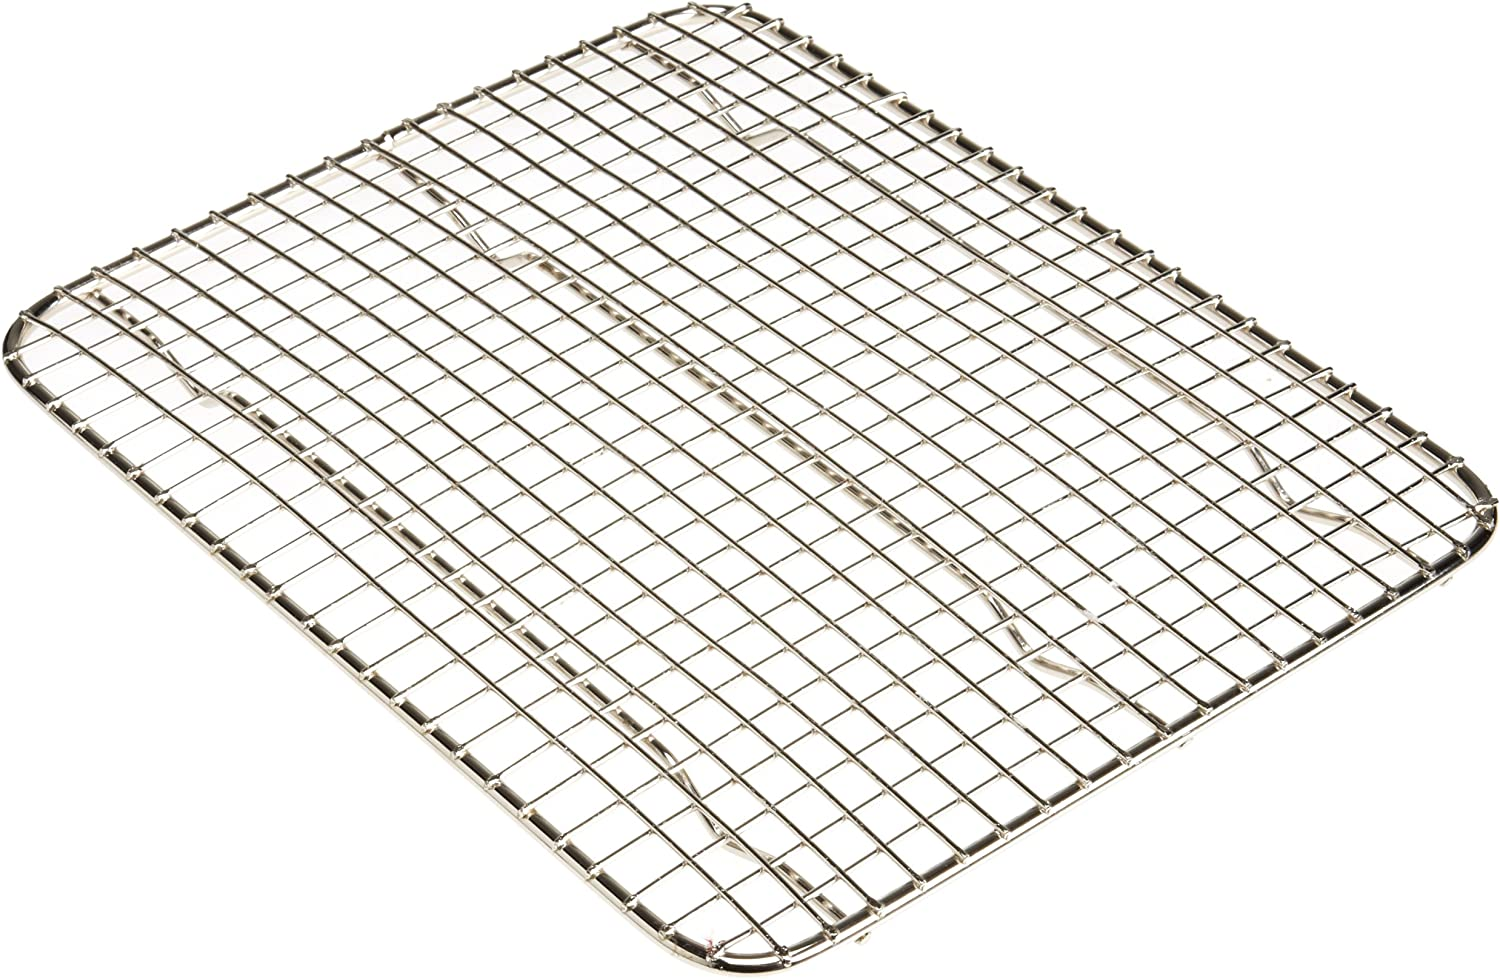 Kitchen Supply 8 x 10 Inch Cooling Rack With Icing Grate